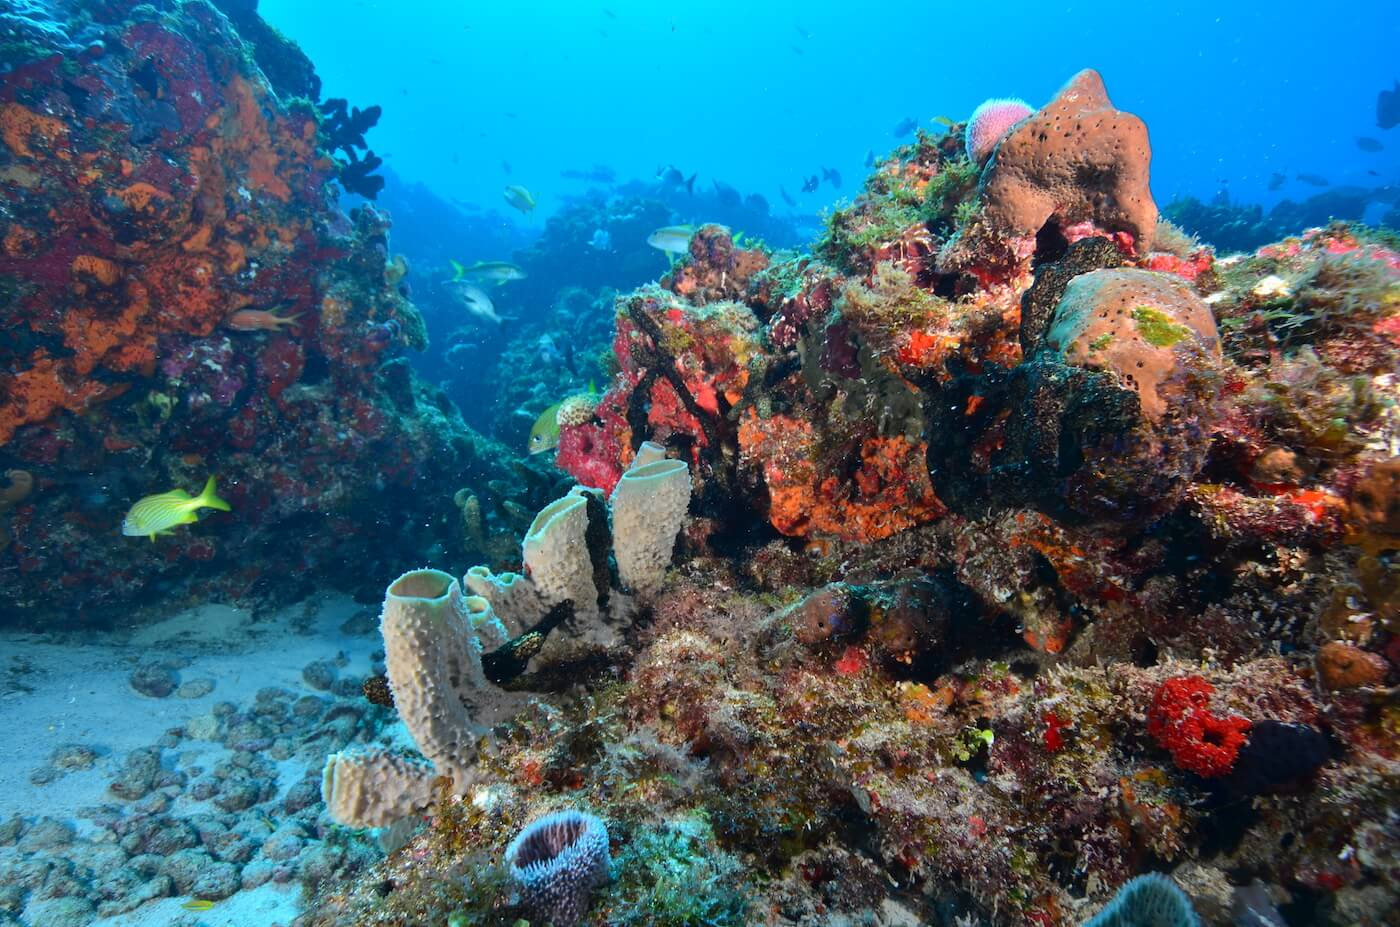 Coral-Reef-Cancun-Dive-Center-Caribbean-Connections-6